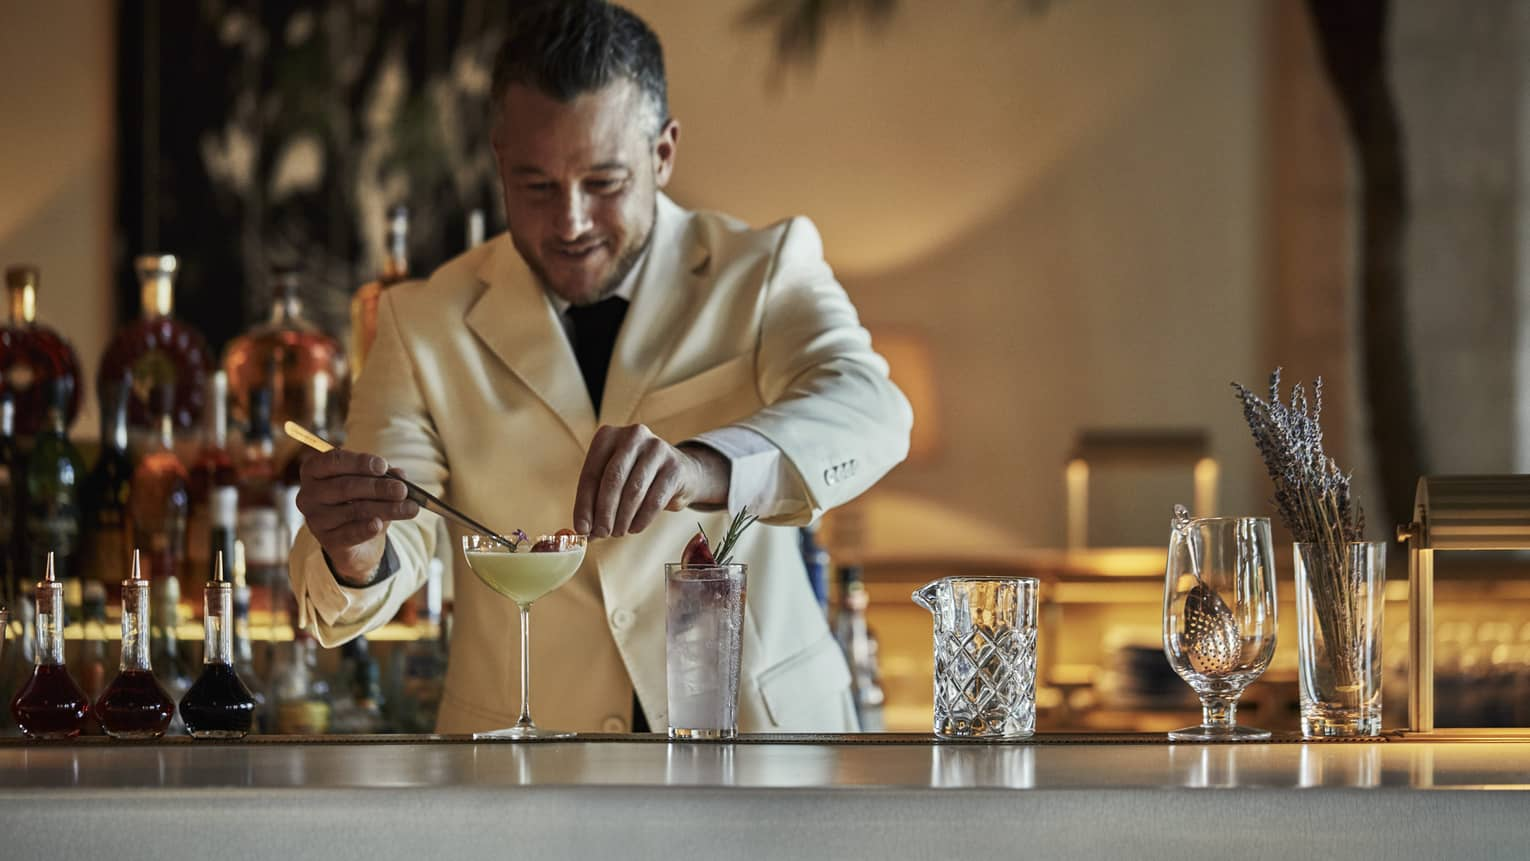 Surf Club Ballroom. Mixologist in a white suit stands behind the bar, garnishing signature Mangareva cocktail